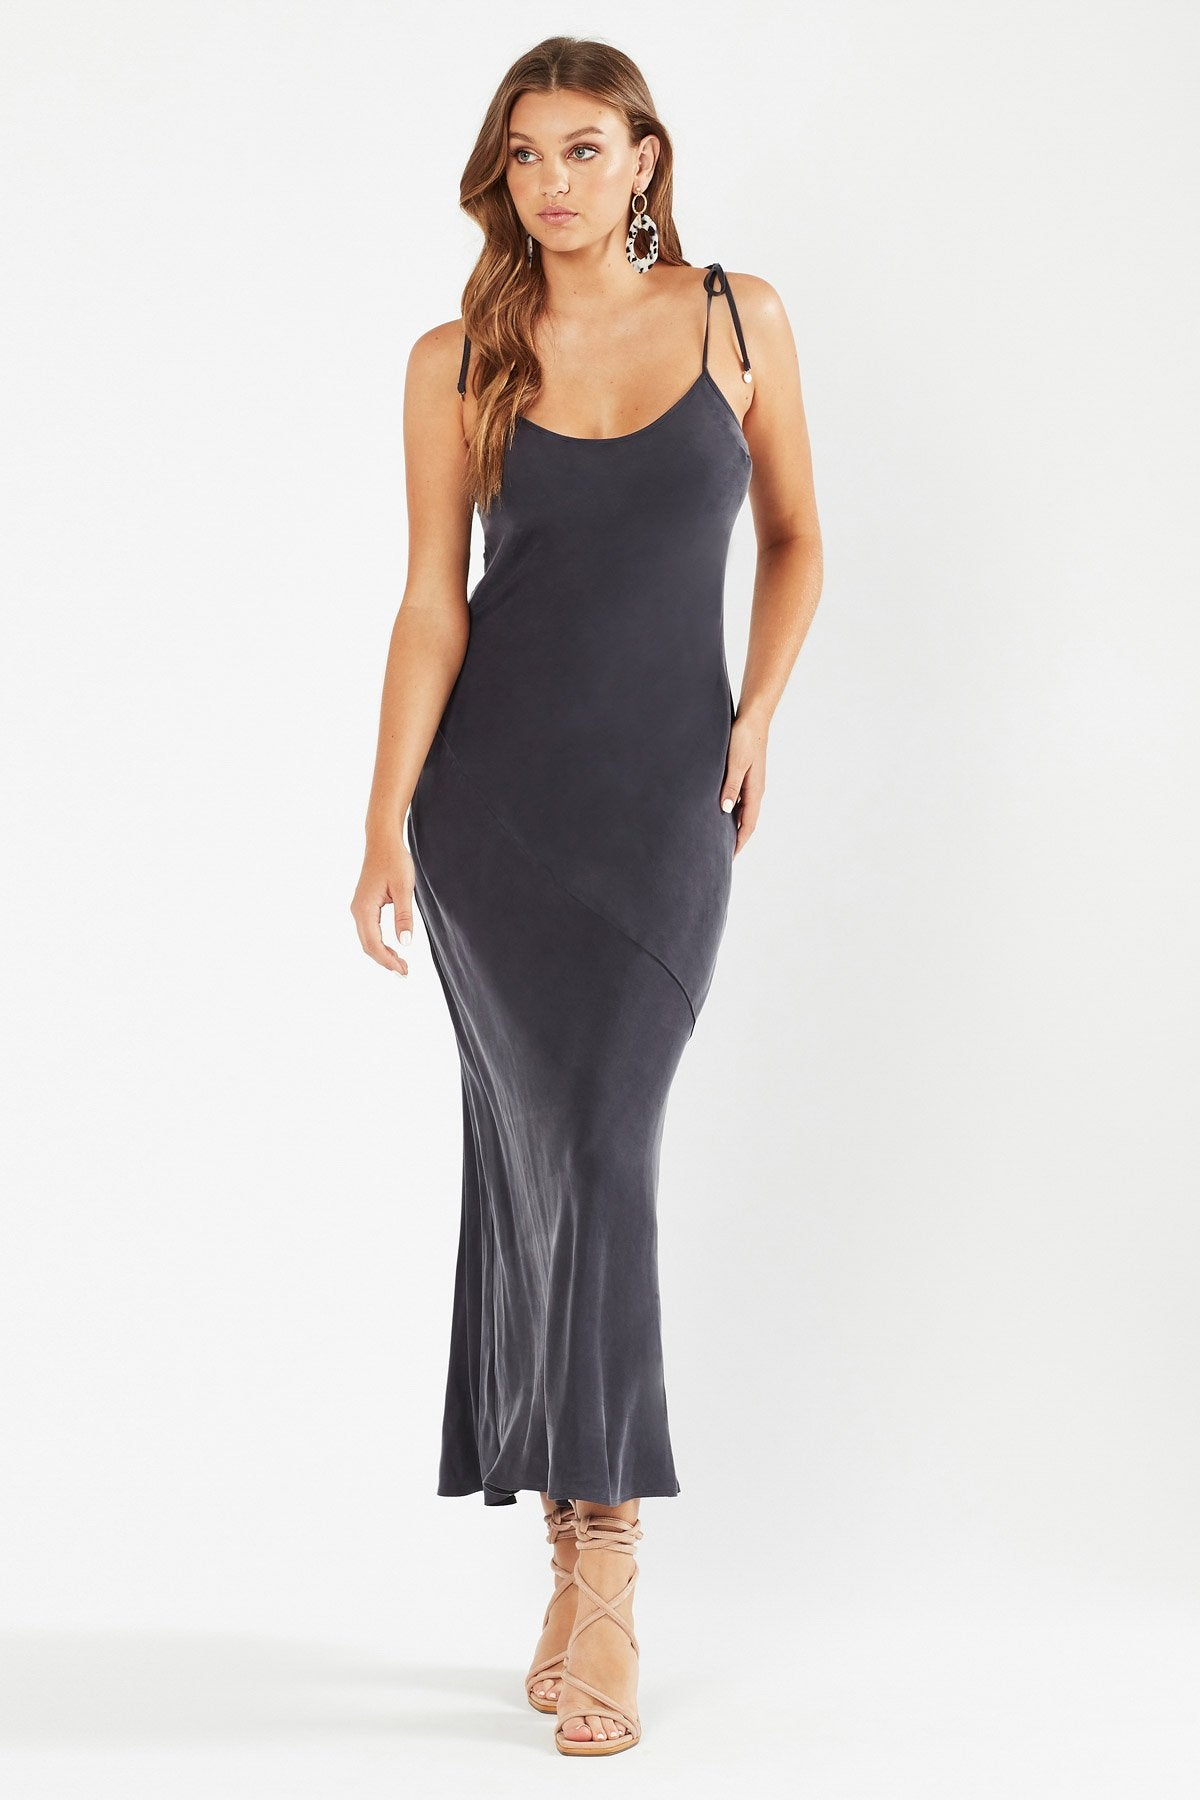 Tigerlily Womens Evelyn Maxi Dress - Charcoal